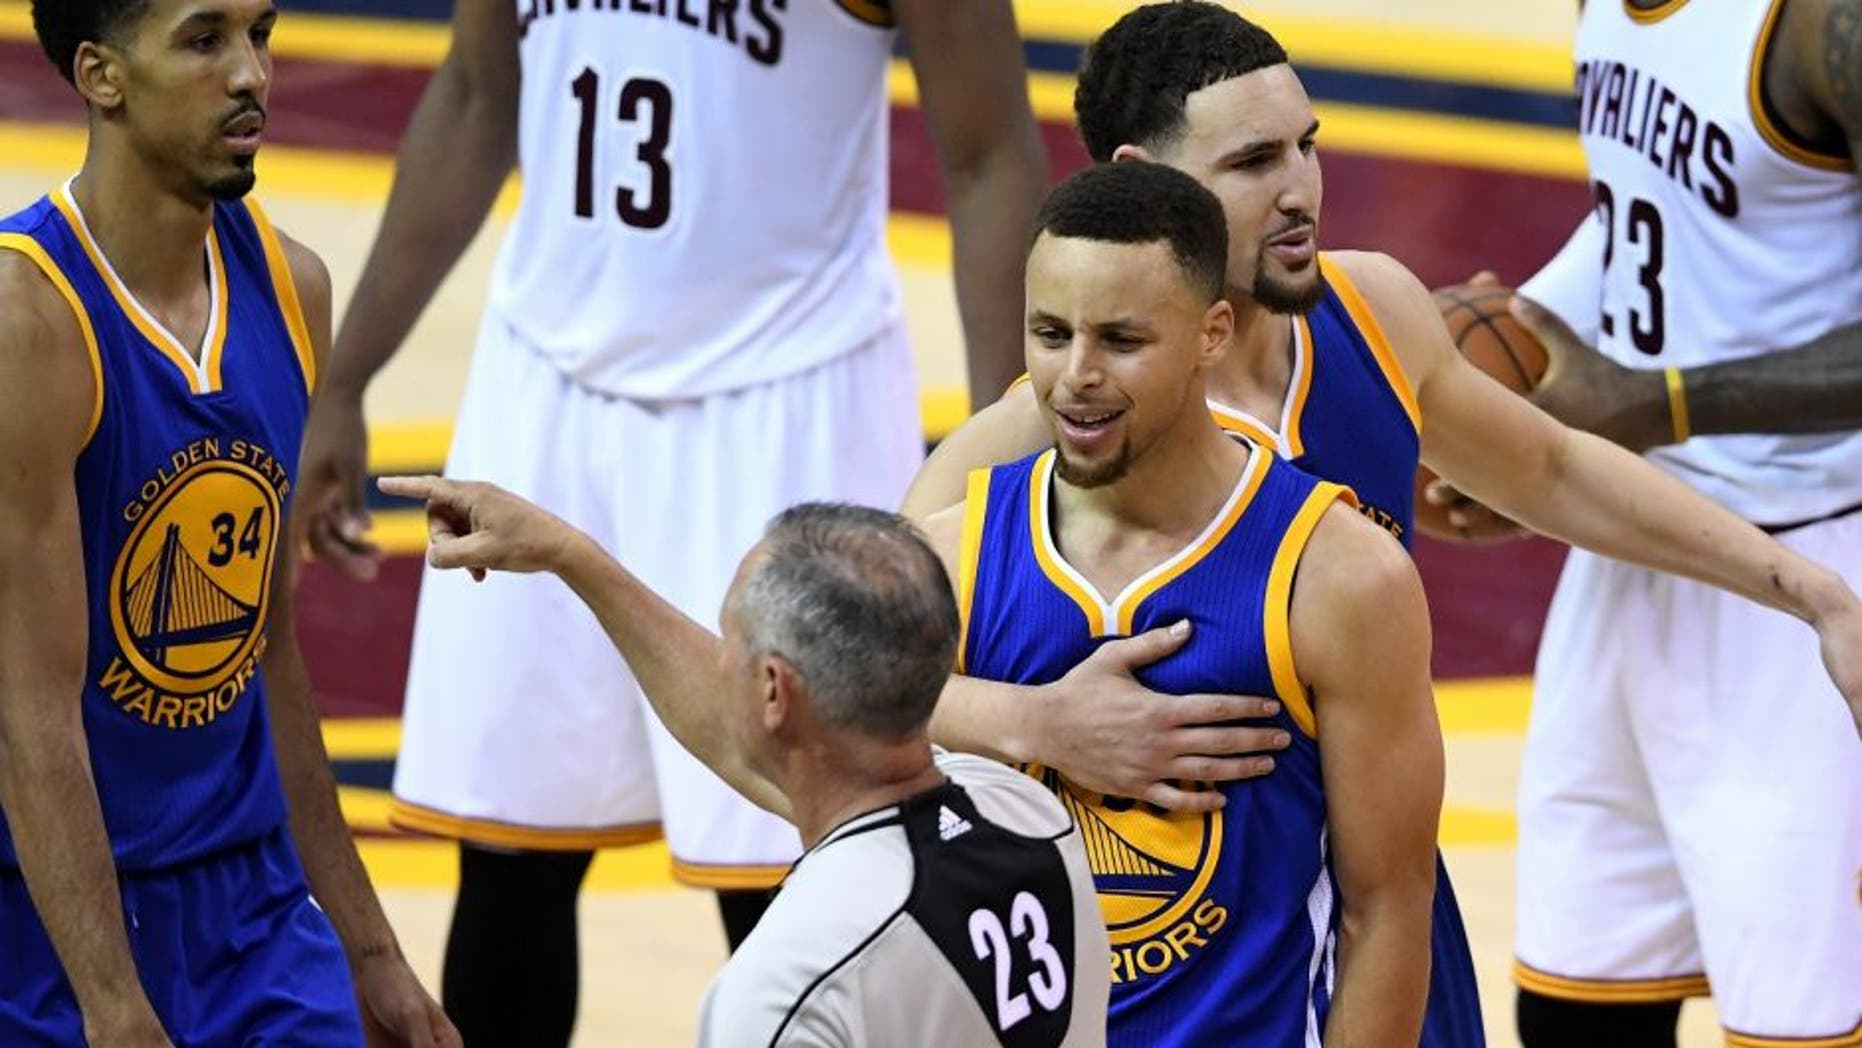 CLEVELAND, OH - JUNE 16: Stephen Curry #30 of the Golden State Warriors reacts as he is ejected from the game during the fourth quarter against the Cleveland Cavaliers in Game 6 of the 2016 NBA Finals at Quicken Loans Arena on June 16, 2016 in Cleveland, Ohio. NOTE TO USER: User expressly acknowledges and agrees that, by downloading and or using this photograph, User is consenting to the terms and conditions of the Getty Images License Agreement. (Photo by Jason Miller/Getty Images)